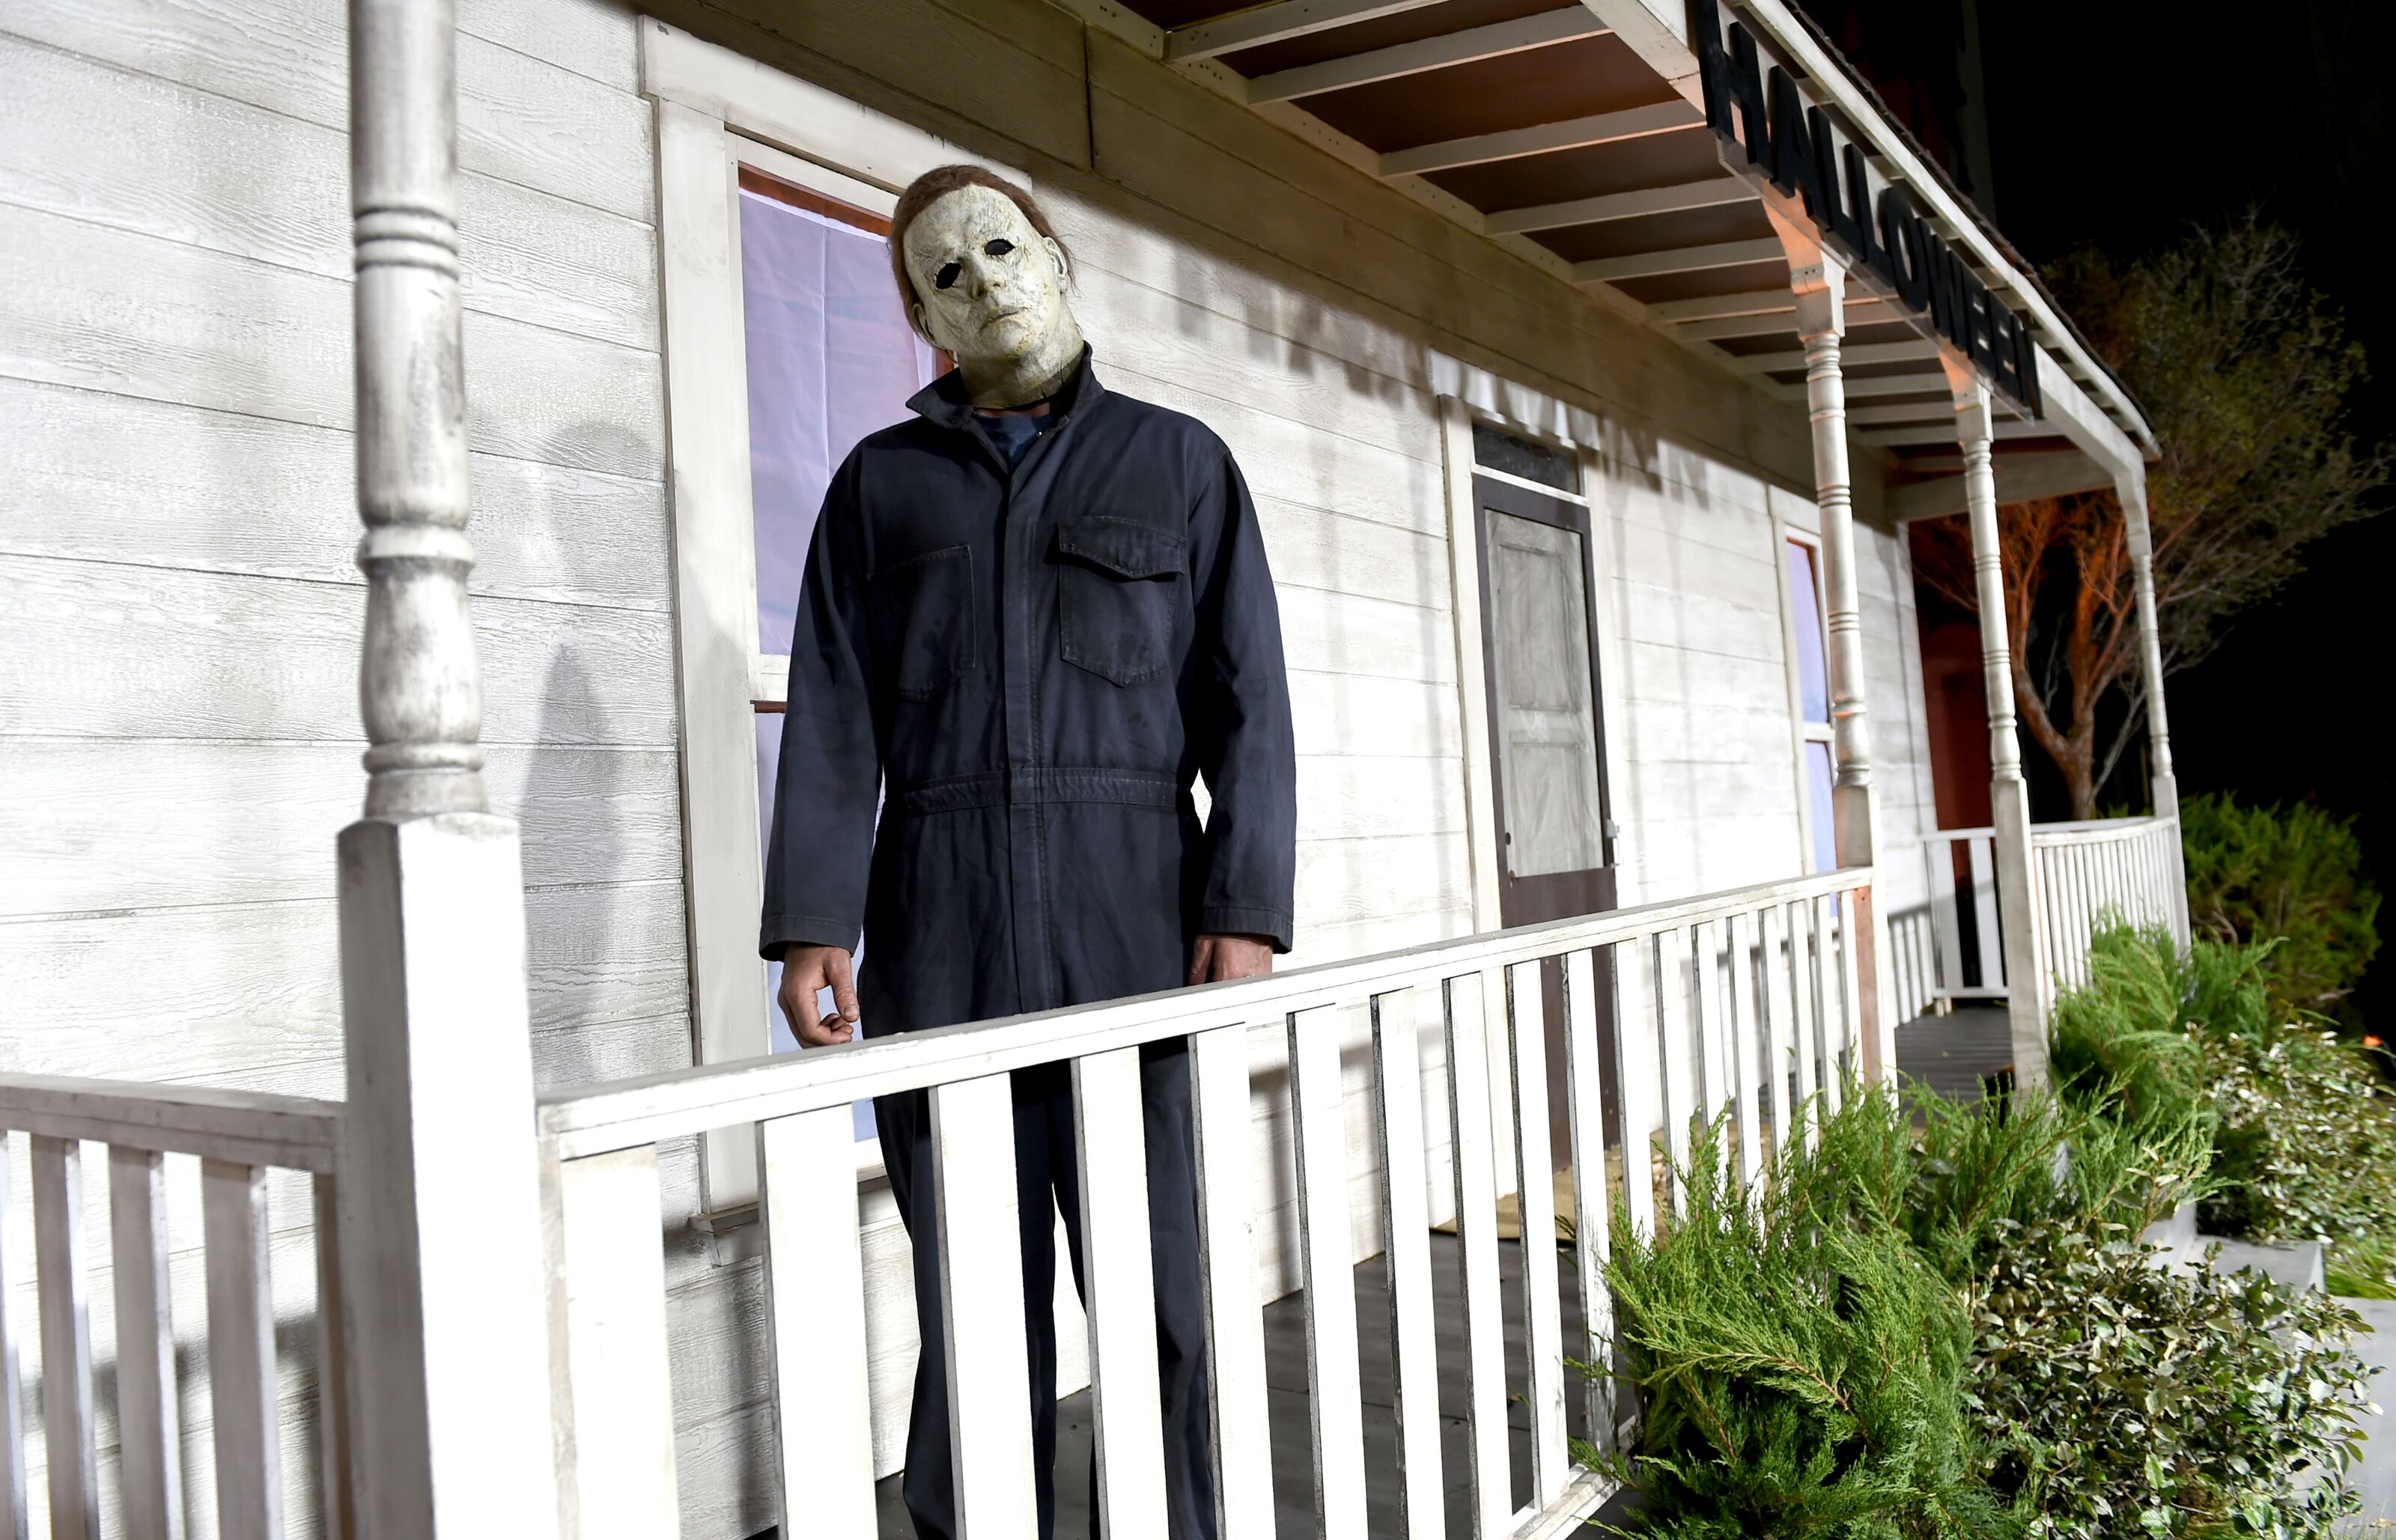 Halloween 4: Is Michael Myers scarier bandaged or wearing the mask?